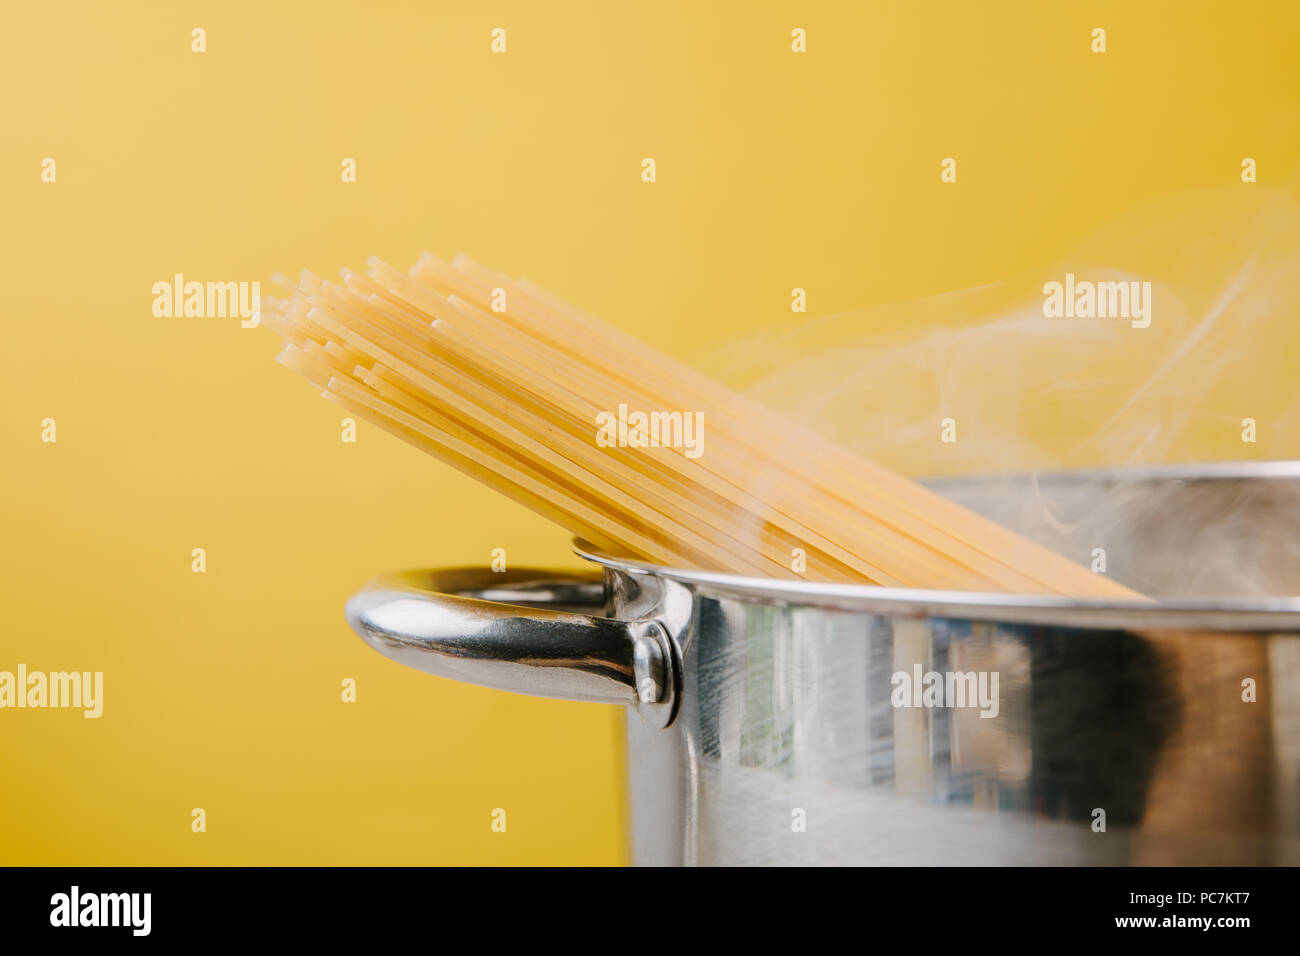 spaghetti boiling in stewpot isolated on yellow - Stock Image